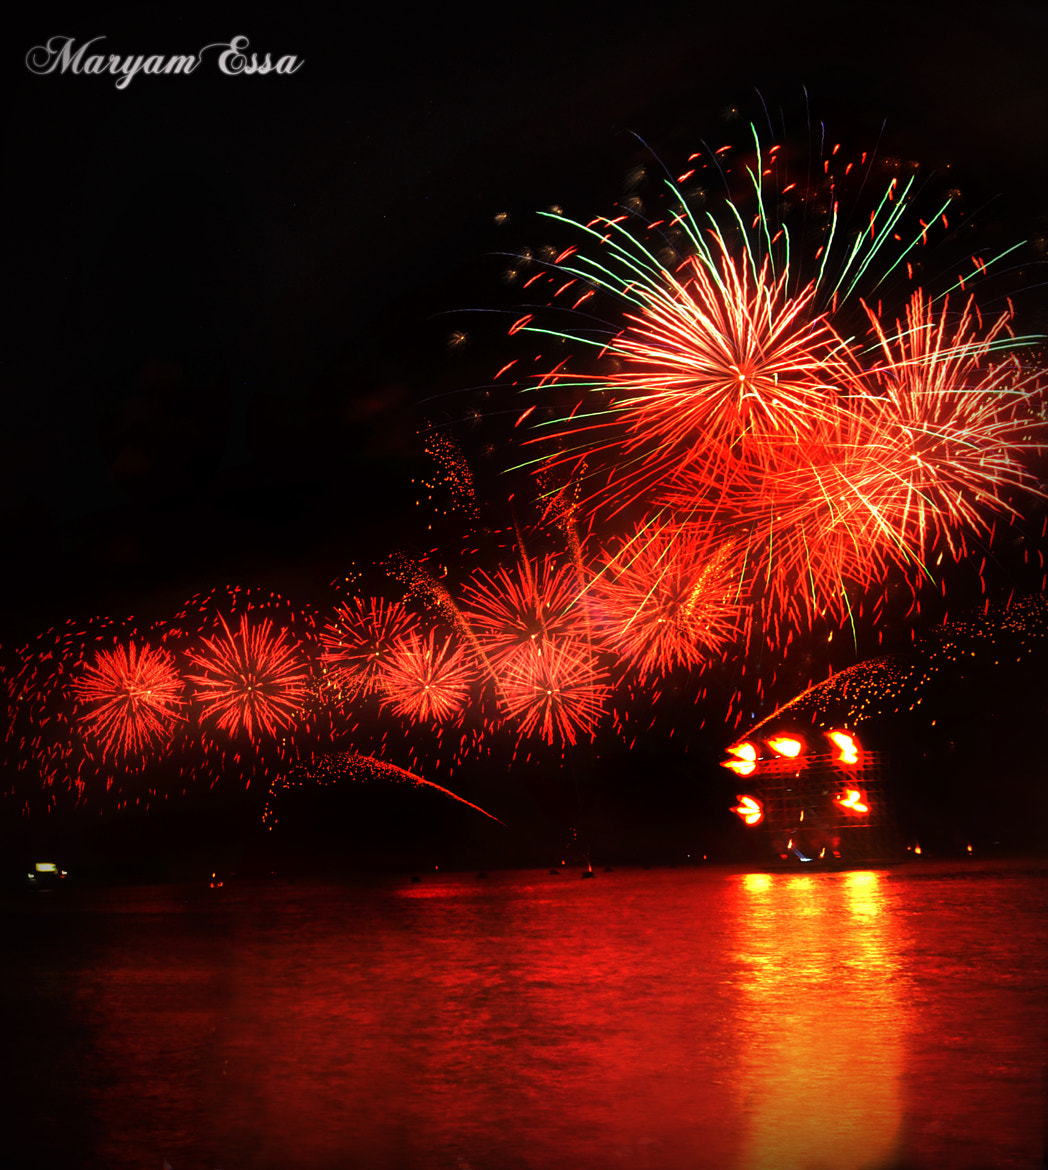 Photograph Red fireworks by Maryam Essa on 500px